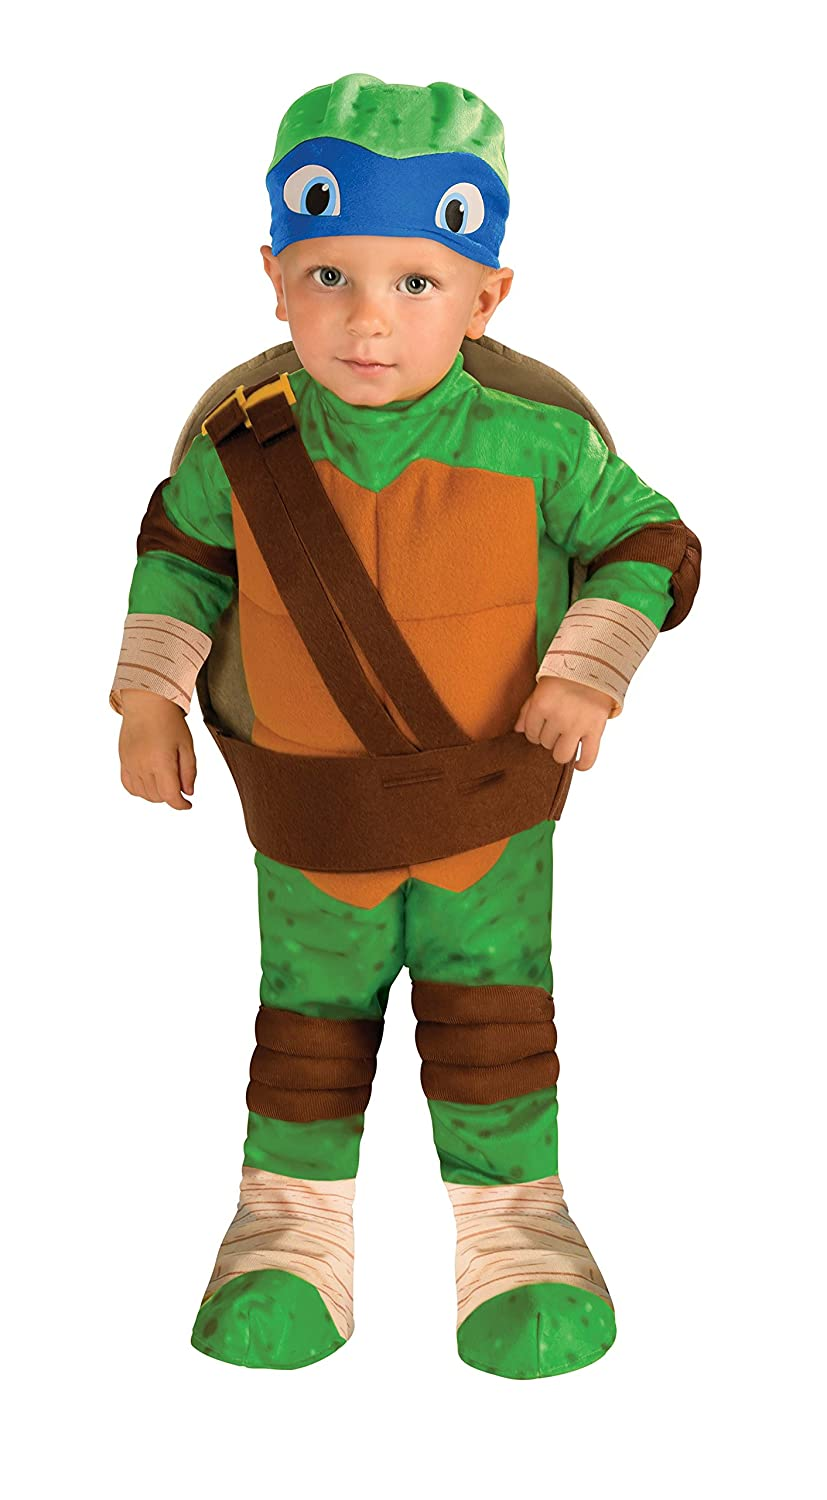 Nickelodeon Teenage Mutant Ninja Turtles Leonardo Romper Shell and Headpiece Rubies Costumes - Apparel